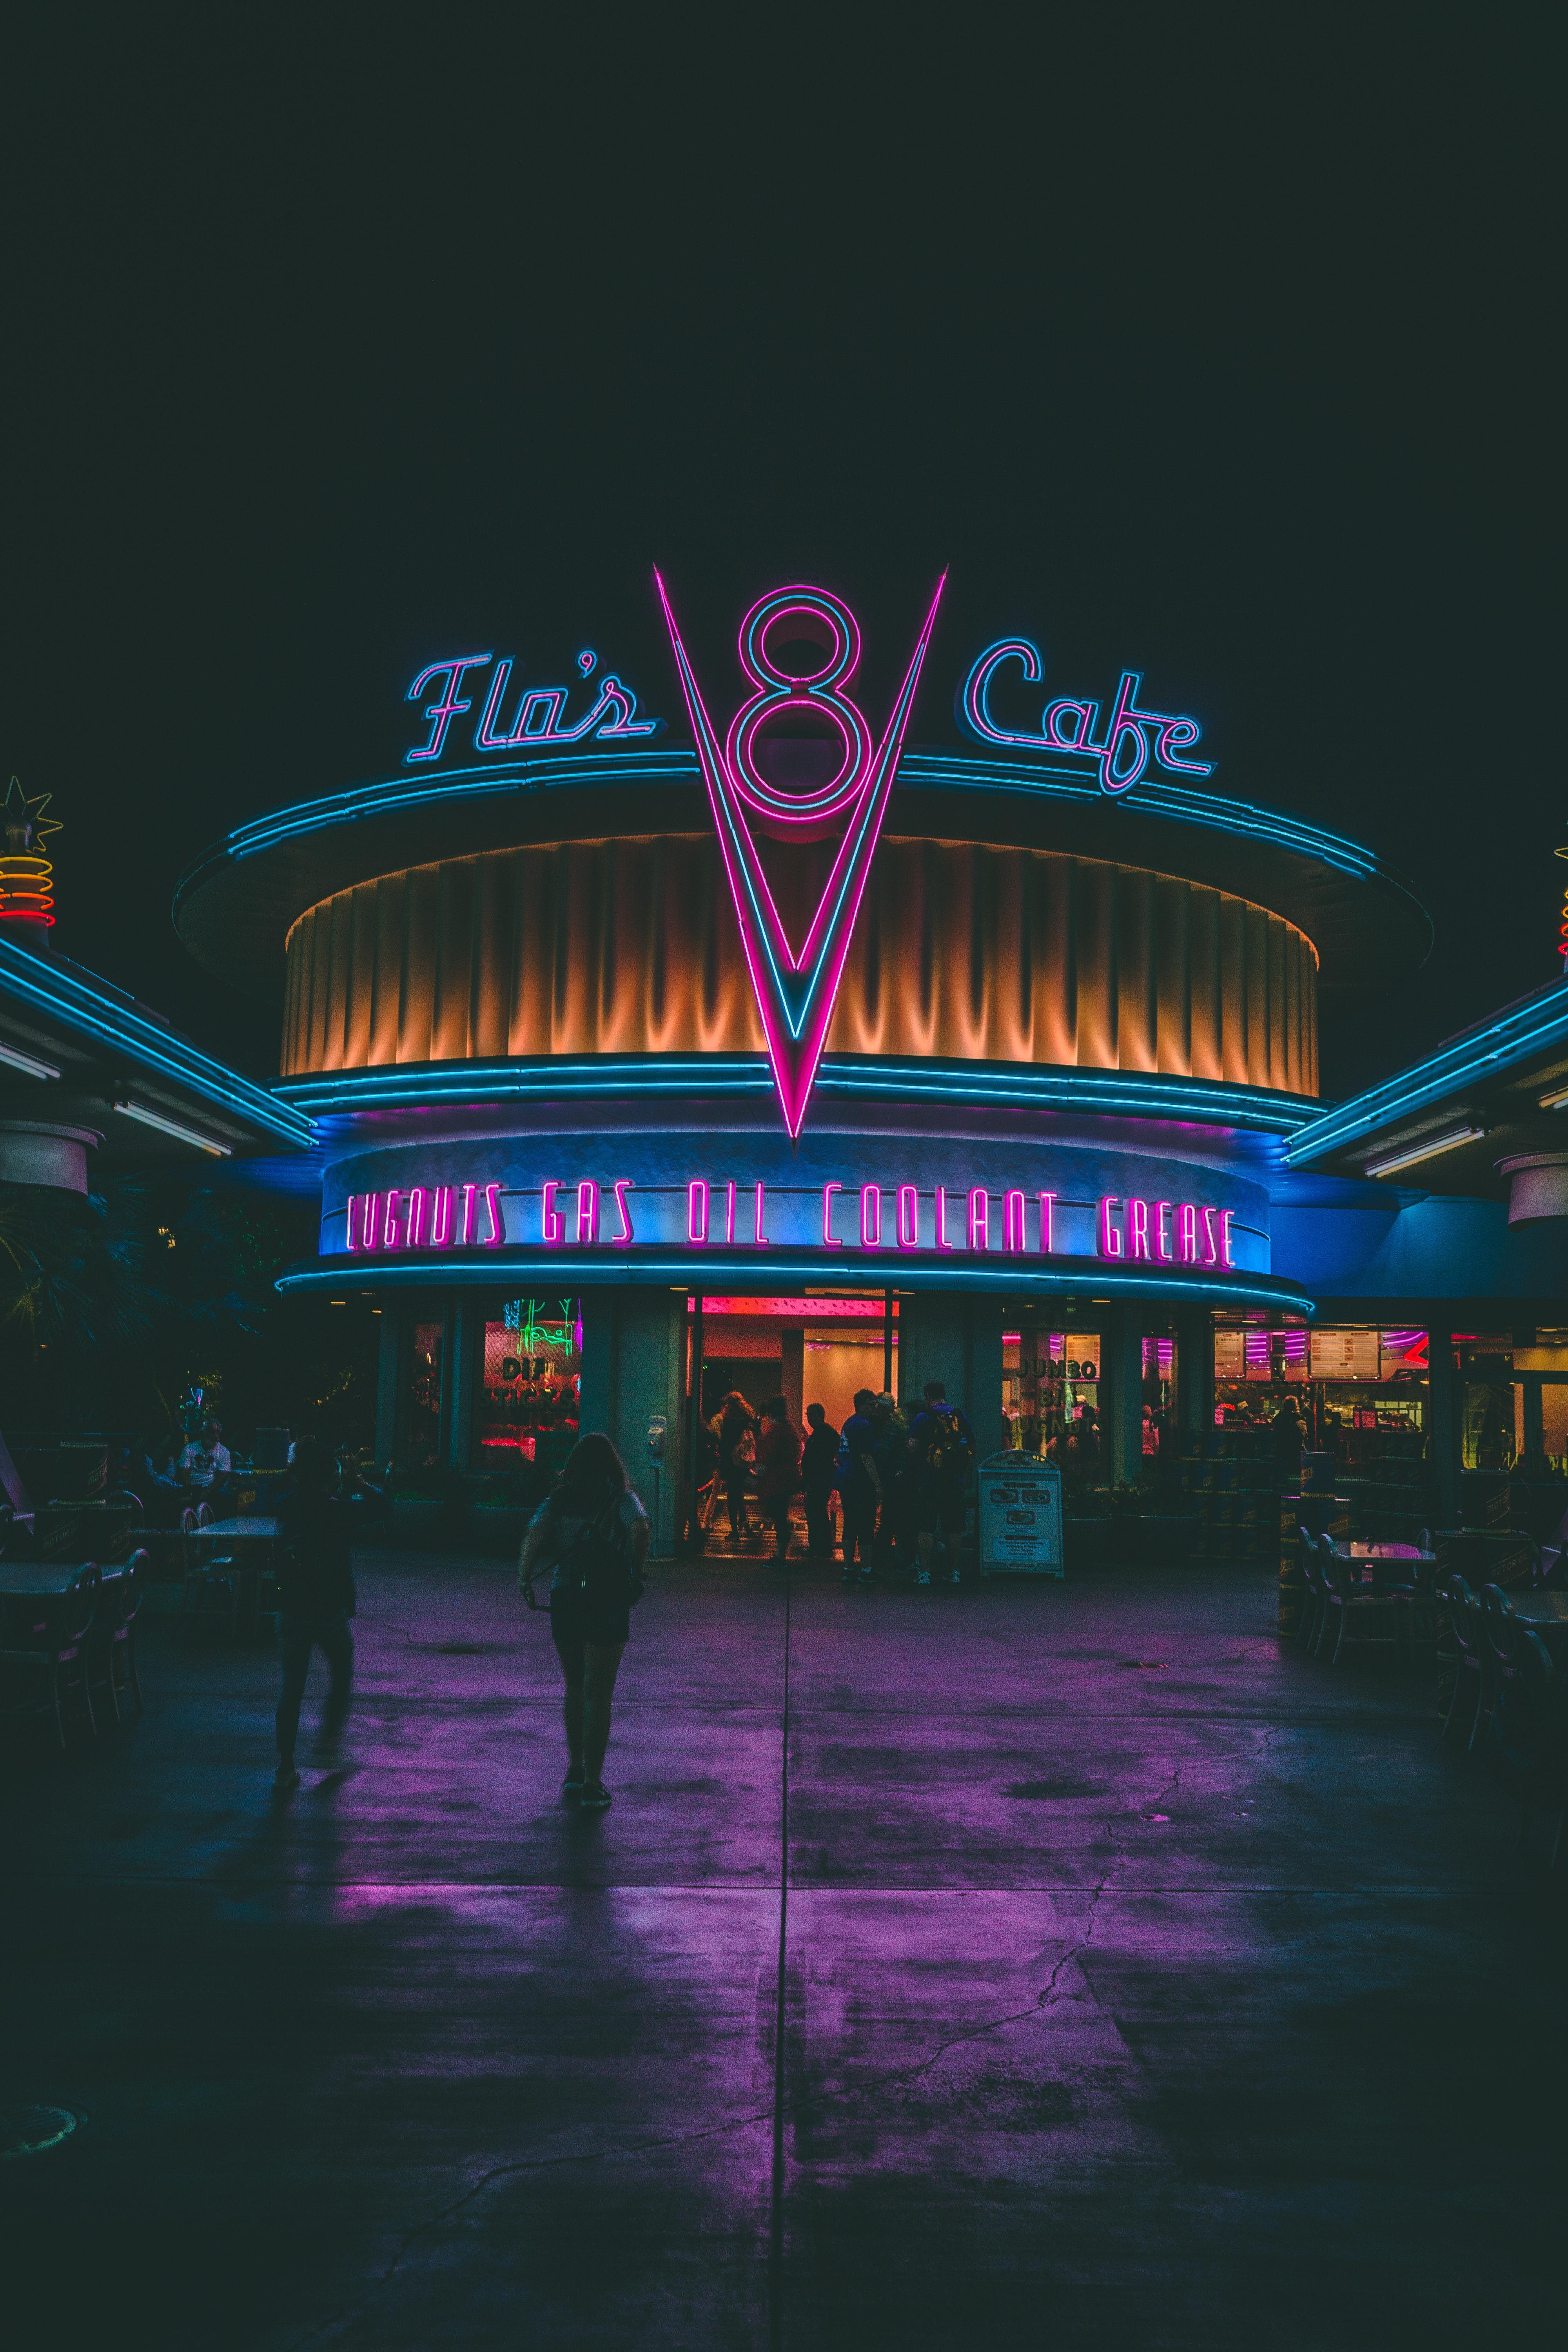 Aesthetic Neon Wallpapers - Wallpaper Cave